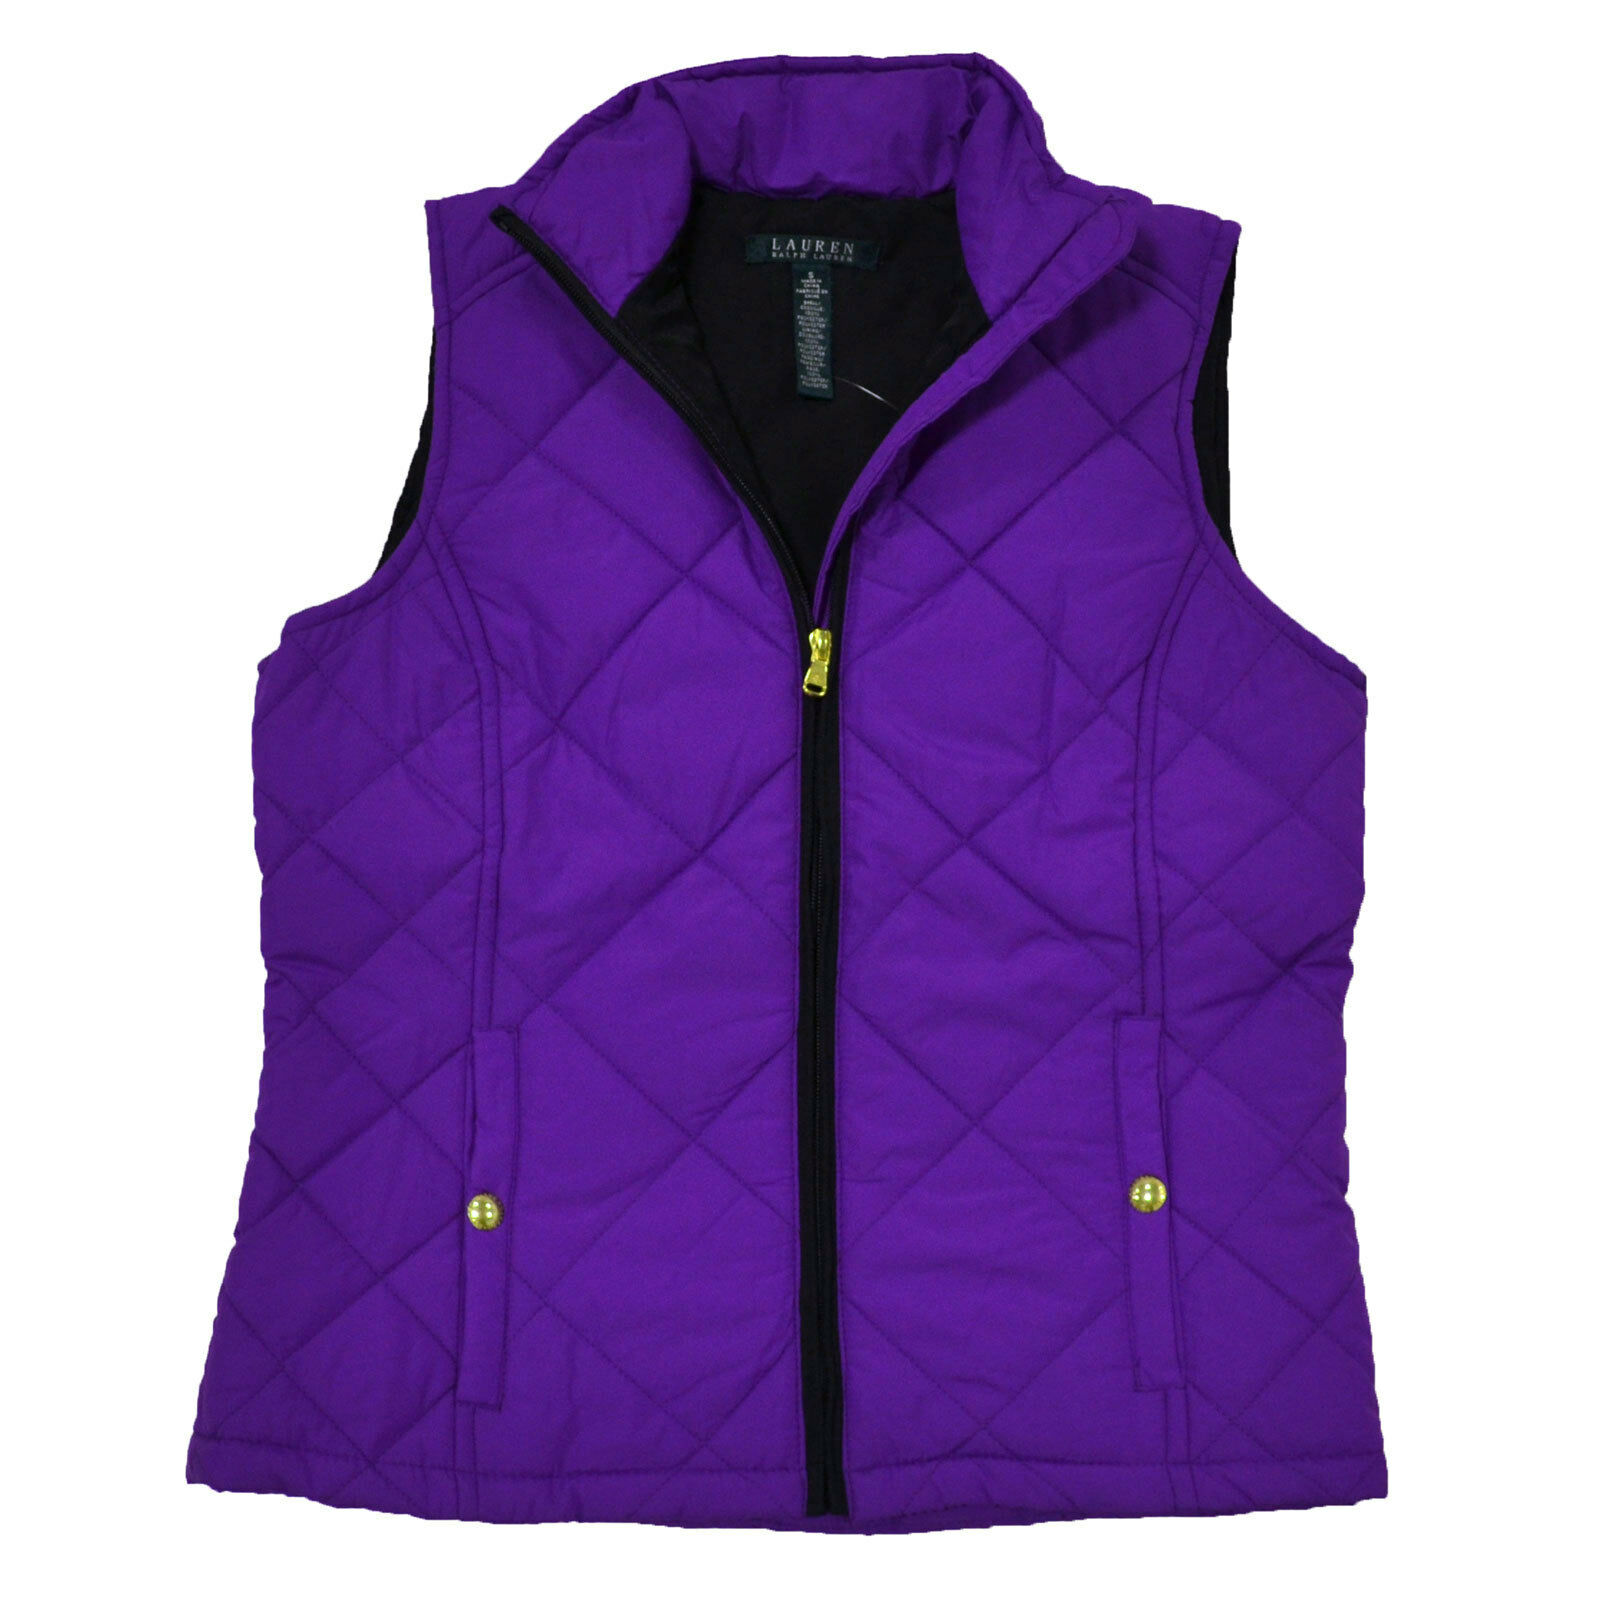 Ralph Lauren Womens Puffer Vest Full Zip Quilted Jacket LRL S ... : purple quilted jacket - Adamdwight.com